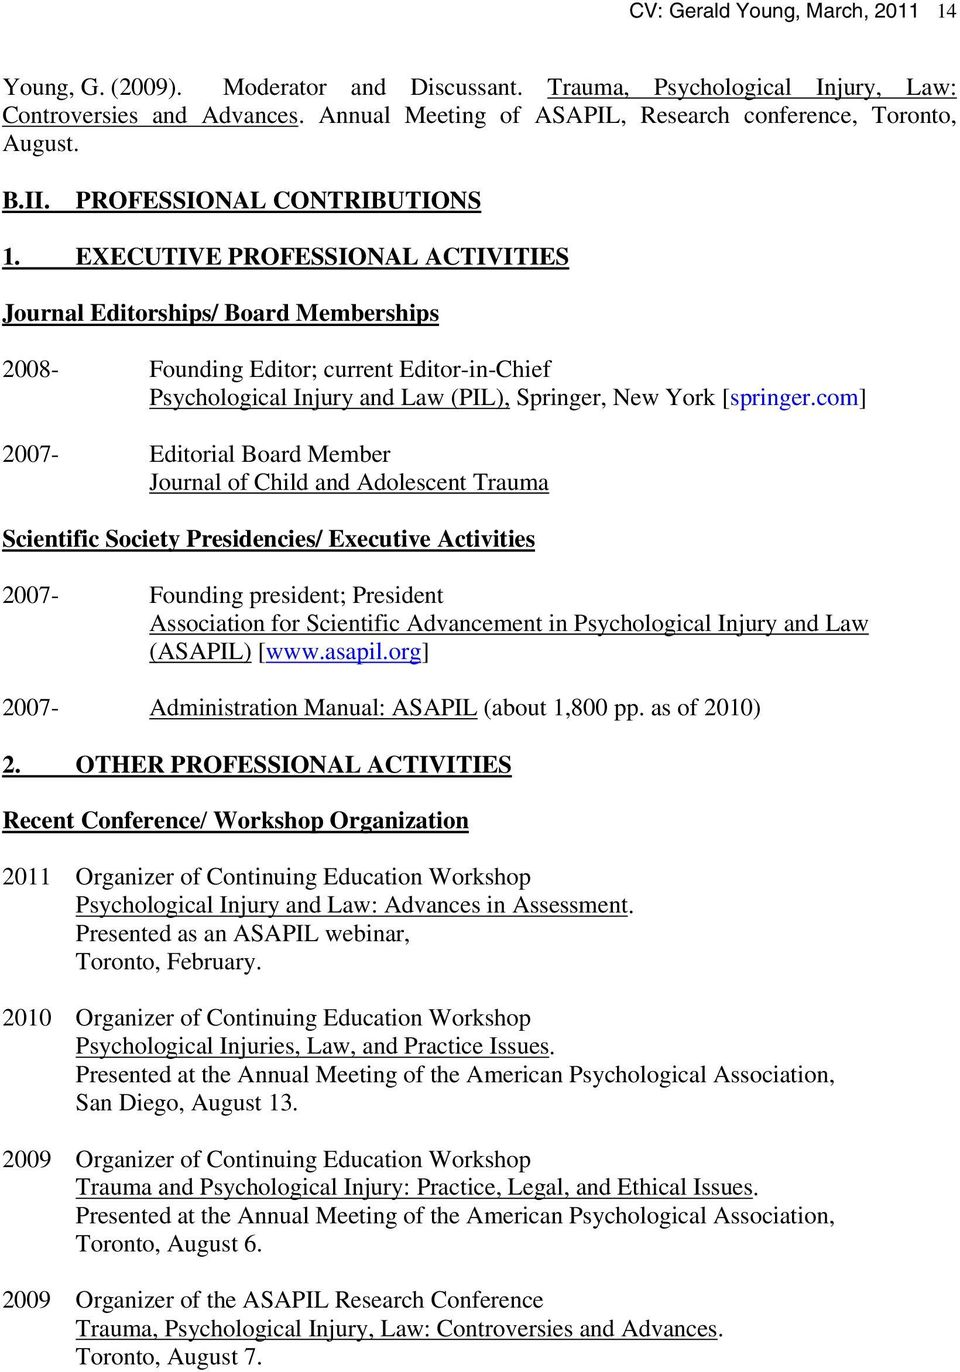 EXECUTIVE PROFESSIONAL ACTIVITIES Journal Editorships/ Board Memberships 2008- Founding Editor; current Editor-in-Chief Psychological Injury and Law (PIL), Springer, New York [springer.